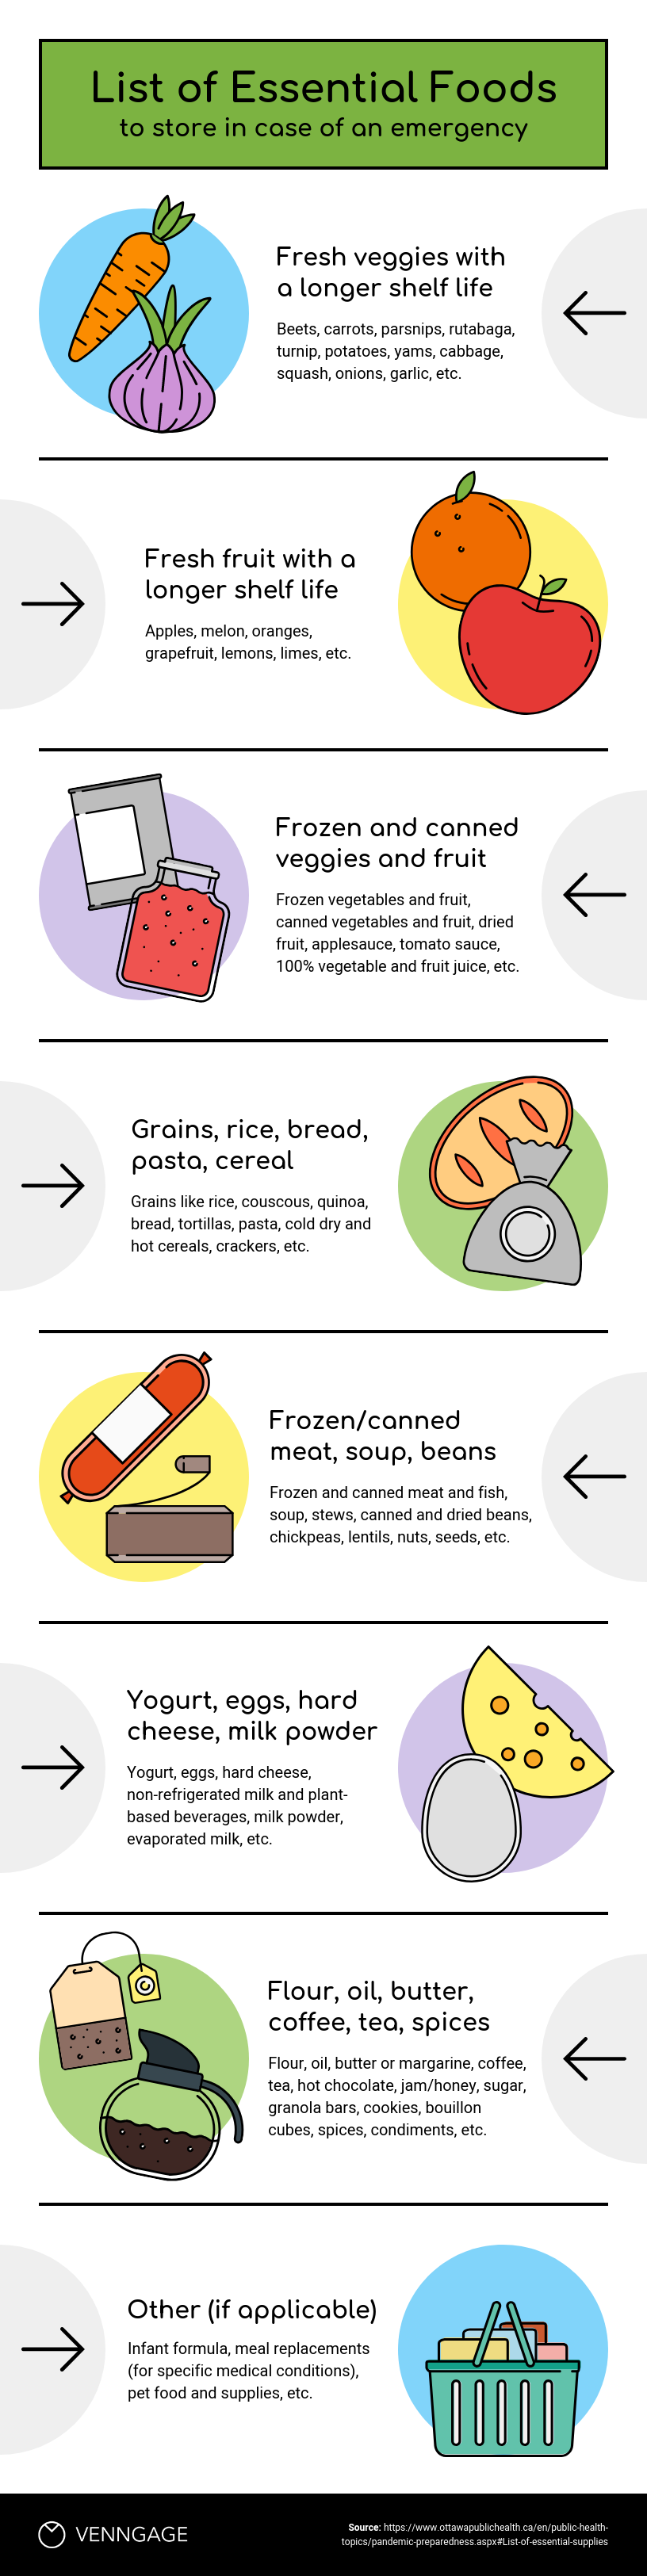 Food Supplies List Infographic Template Infographic Templates Food Supply List Infographic